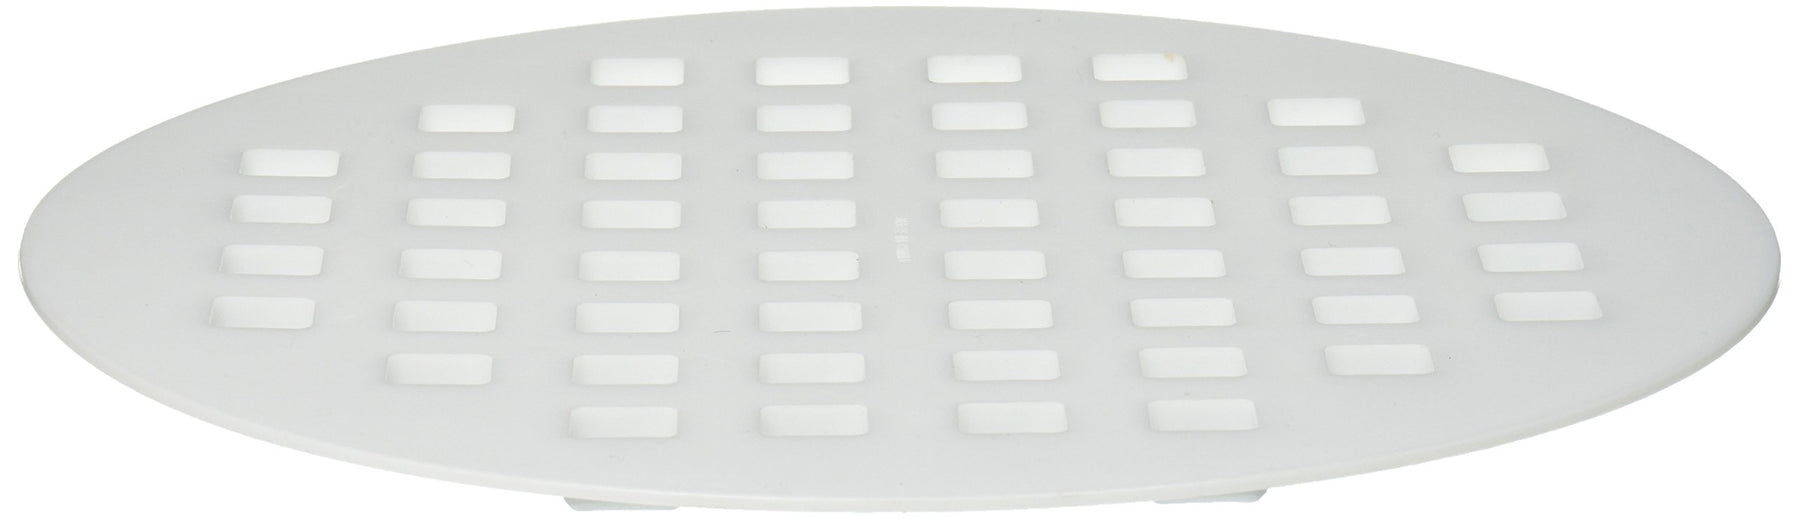 Norpro 3258 Lattice Pie Top Cutter, 10-Inch, White